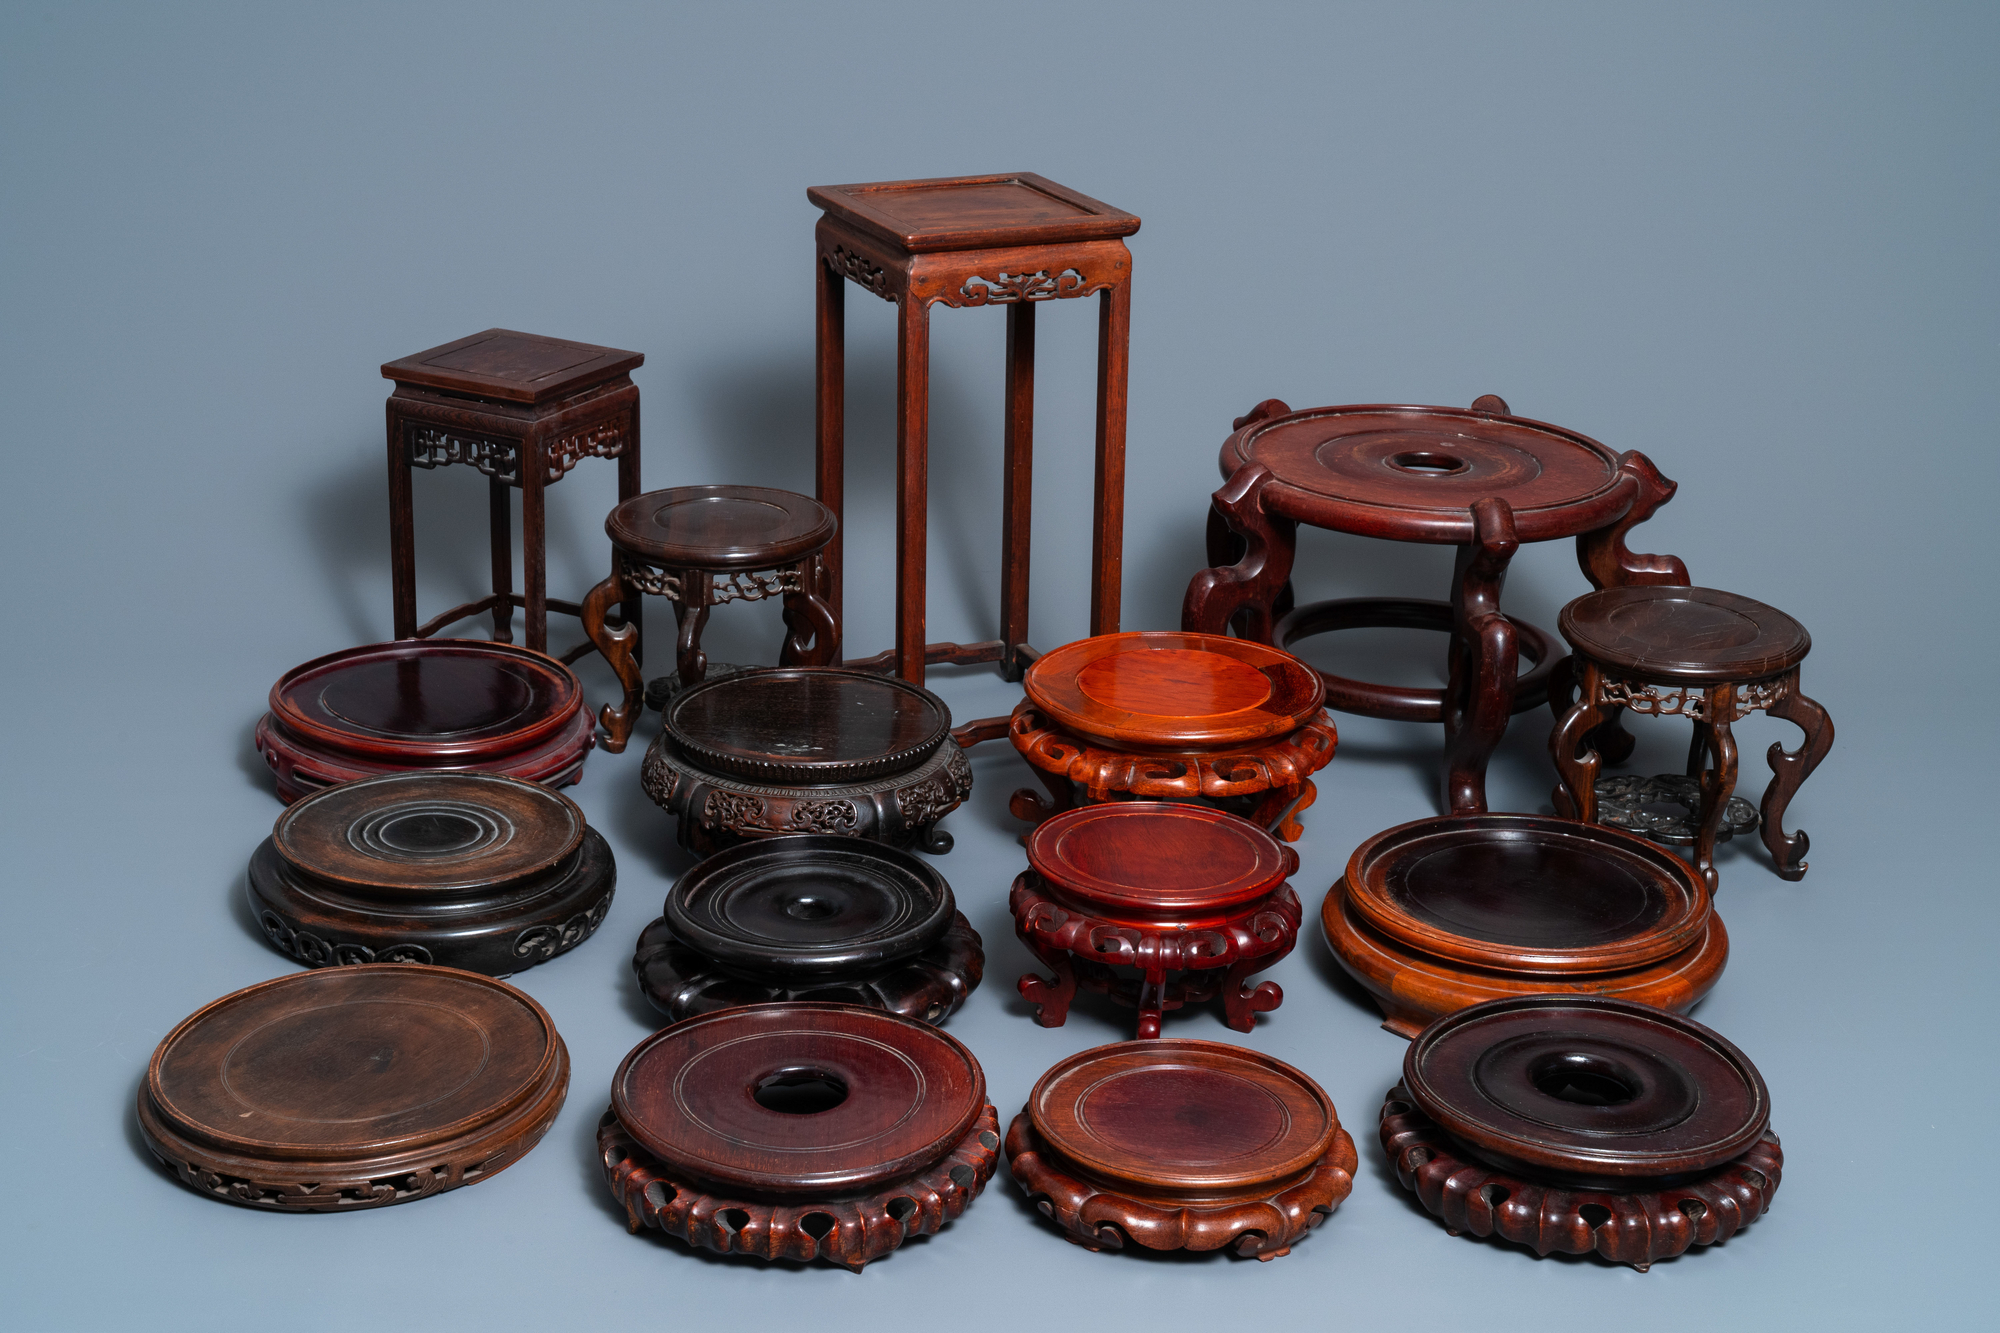 64 Chinese carved wooden stands, 19/20th C. - Image 2 of 4